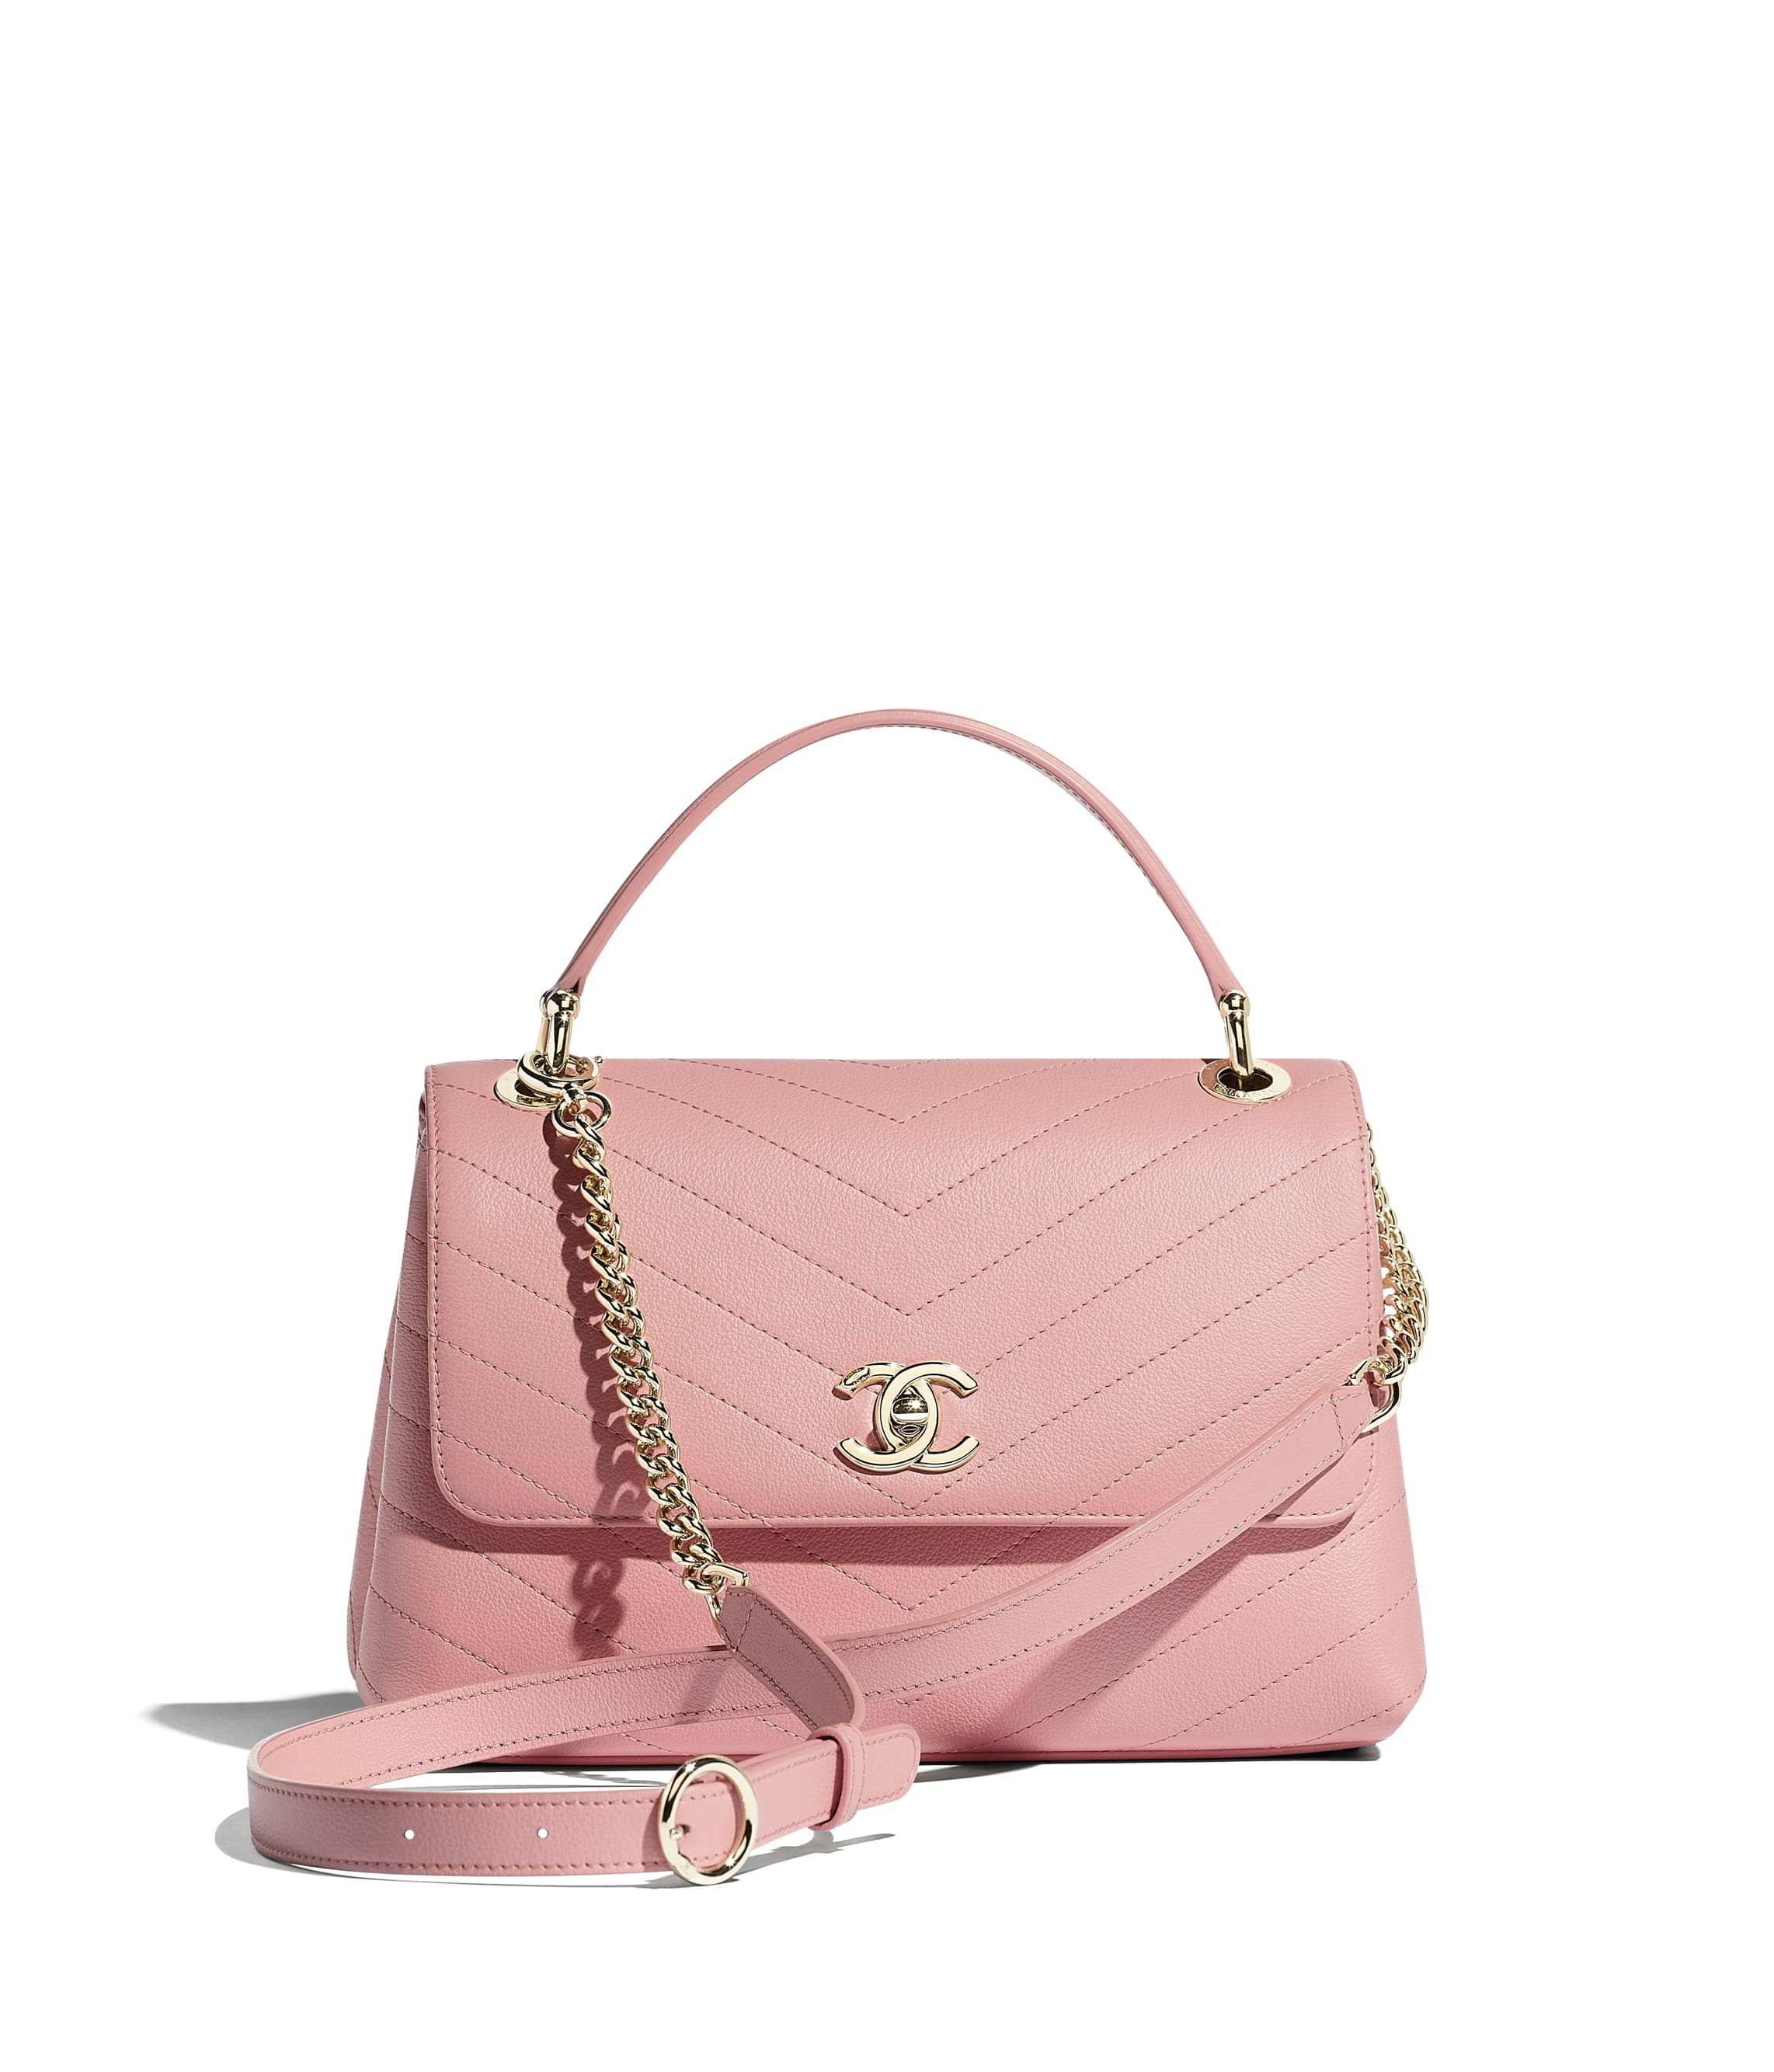 79e0e9ab6757 Small Flap Bag With Top Handle. Grained Calfskin   Gold-Tone Metal